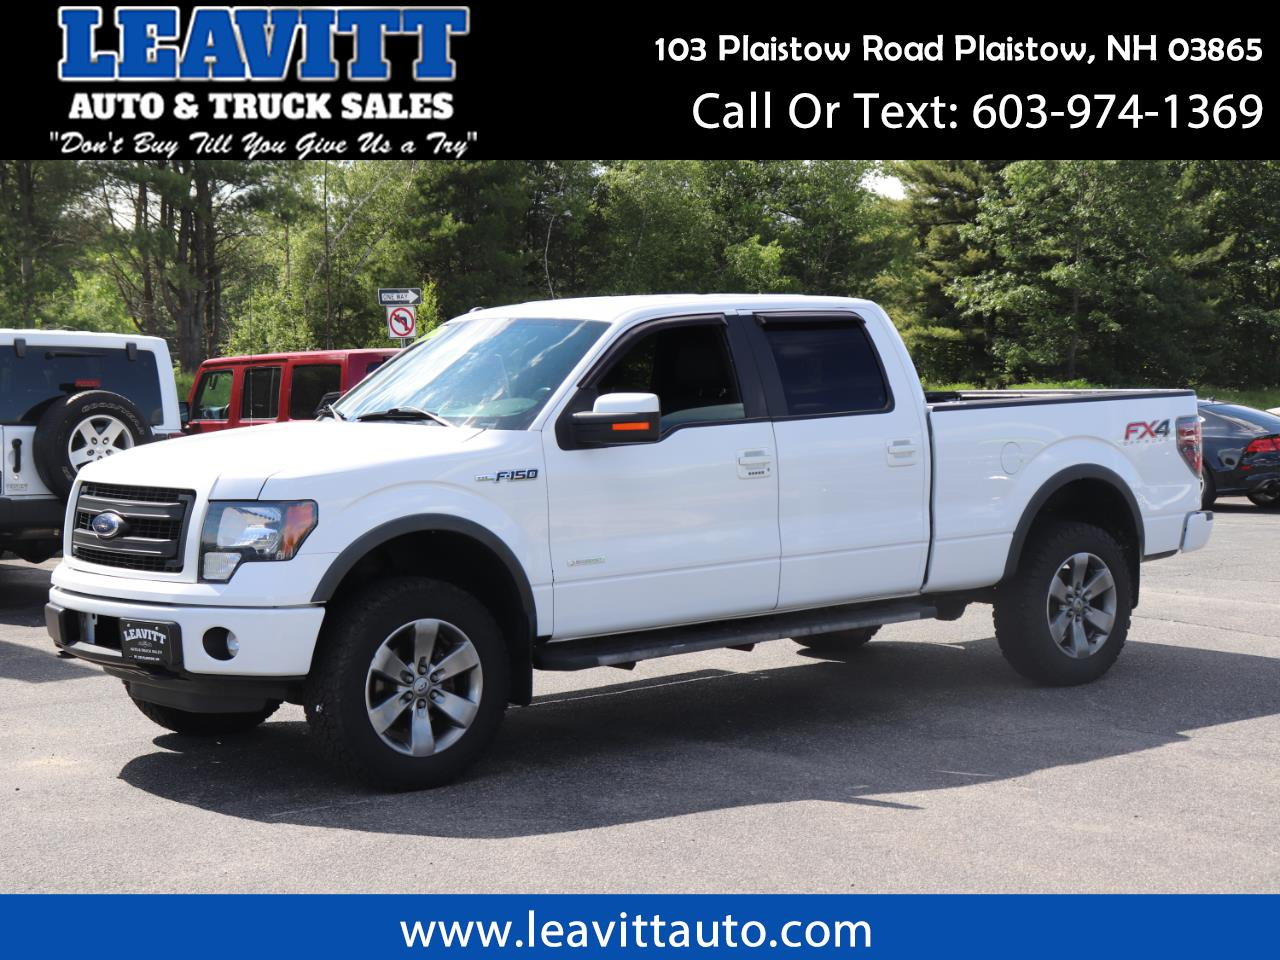 2013 Ford F-150 FX4 SUPERCREW 4X4 6.5FT BED